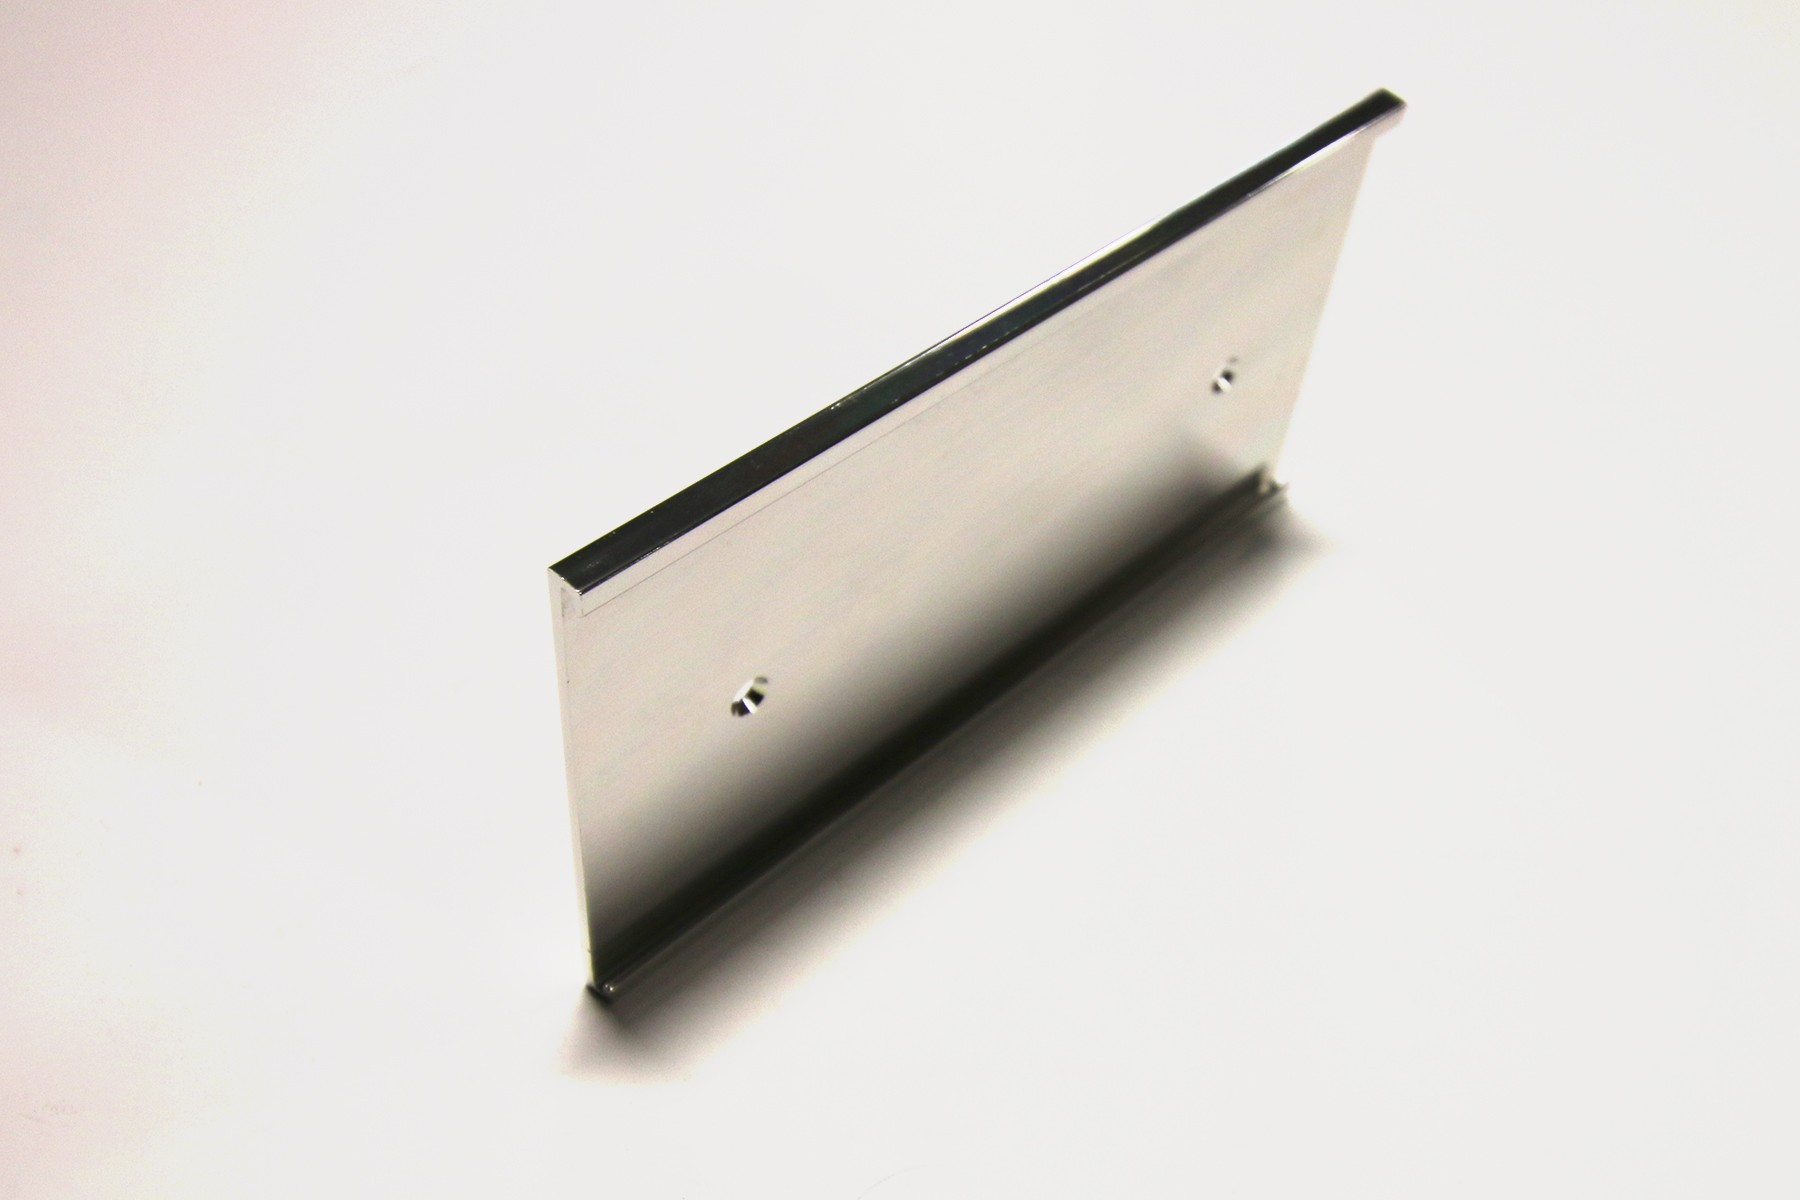 3 x 36 Wall Holder (1/8), Silver